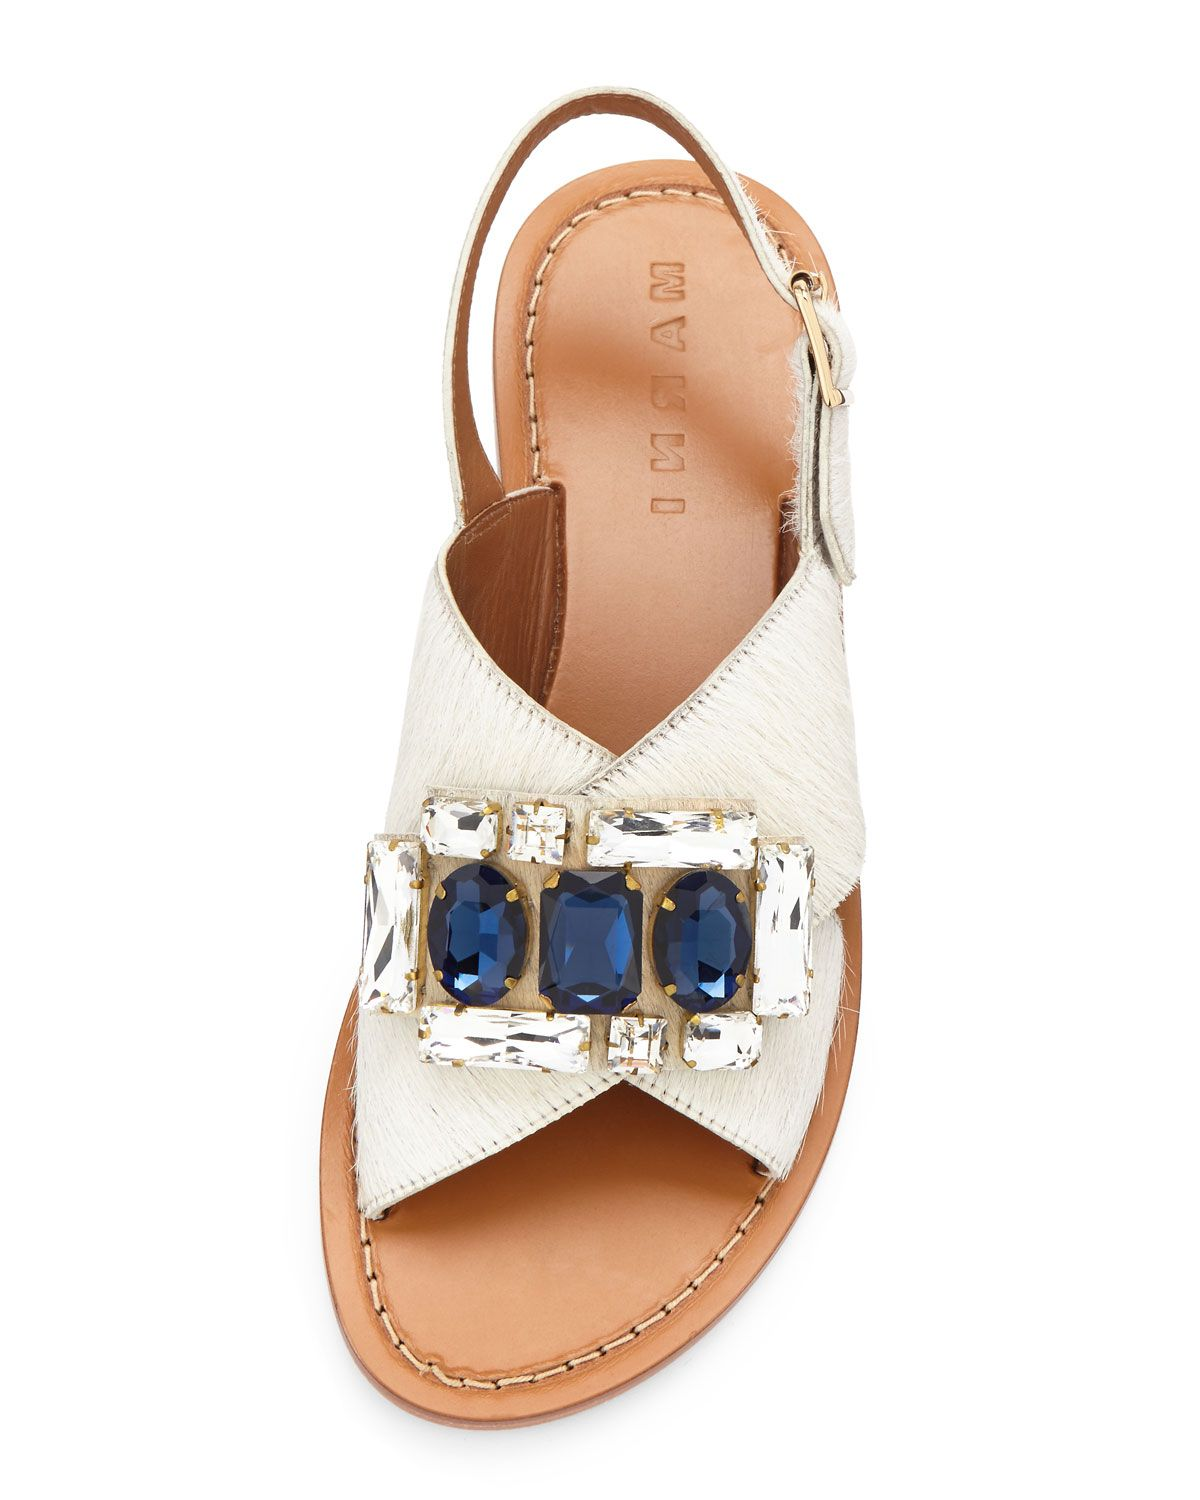 ded90d74c03f Marni Jeweled Calf-Hair Crisscross Flat Sandal